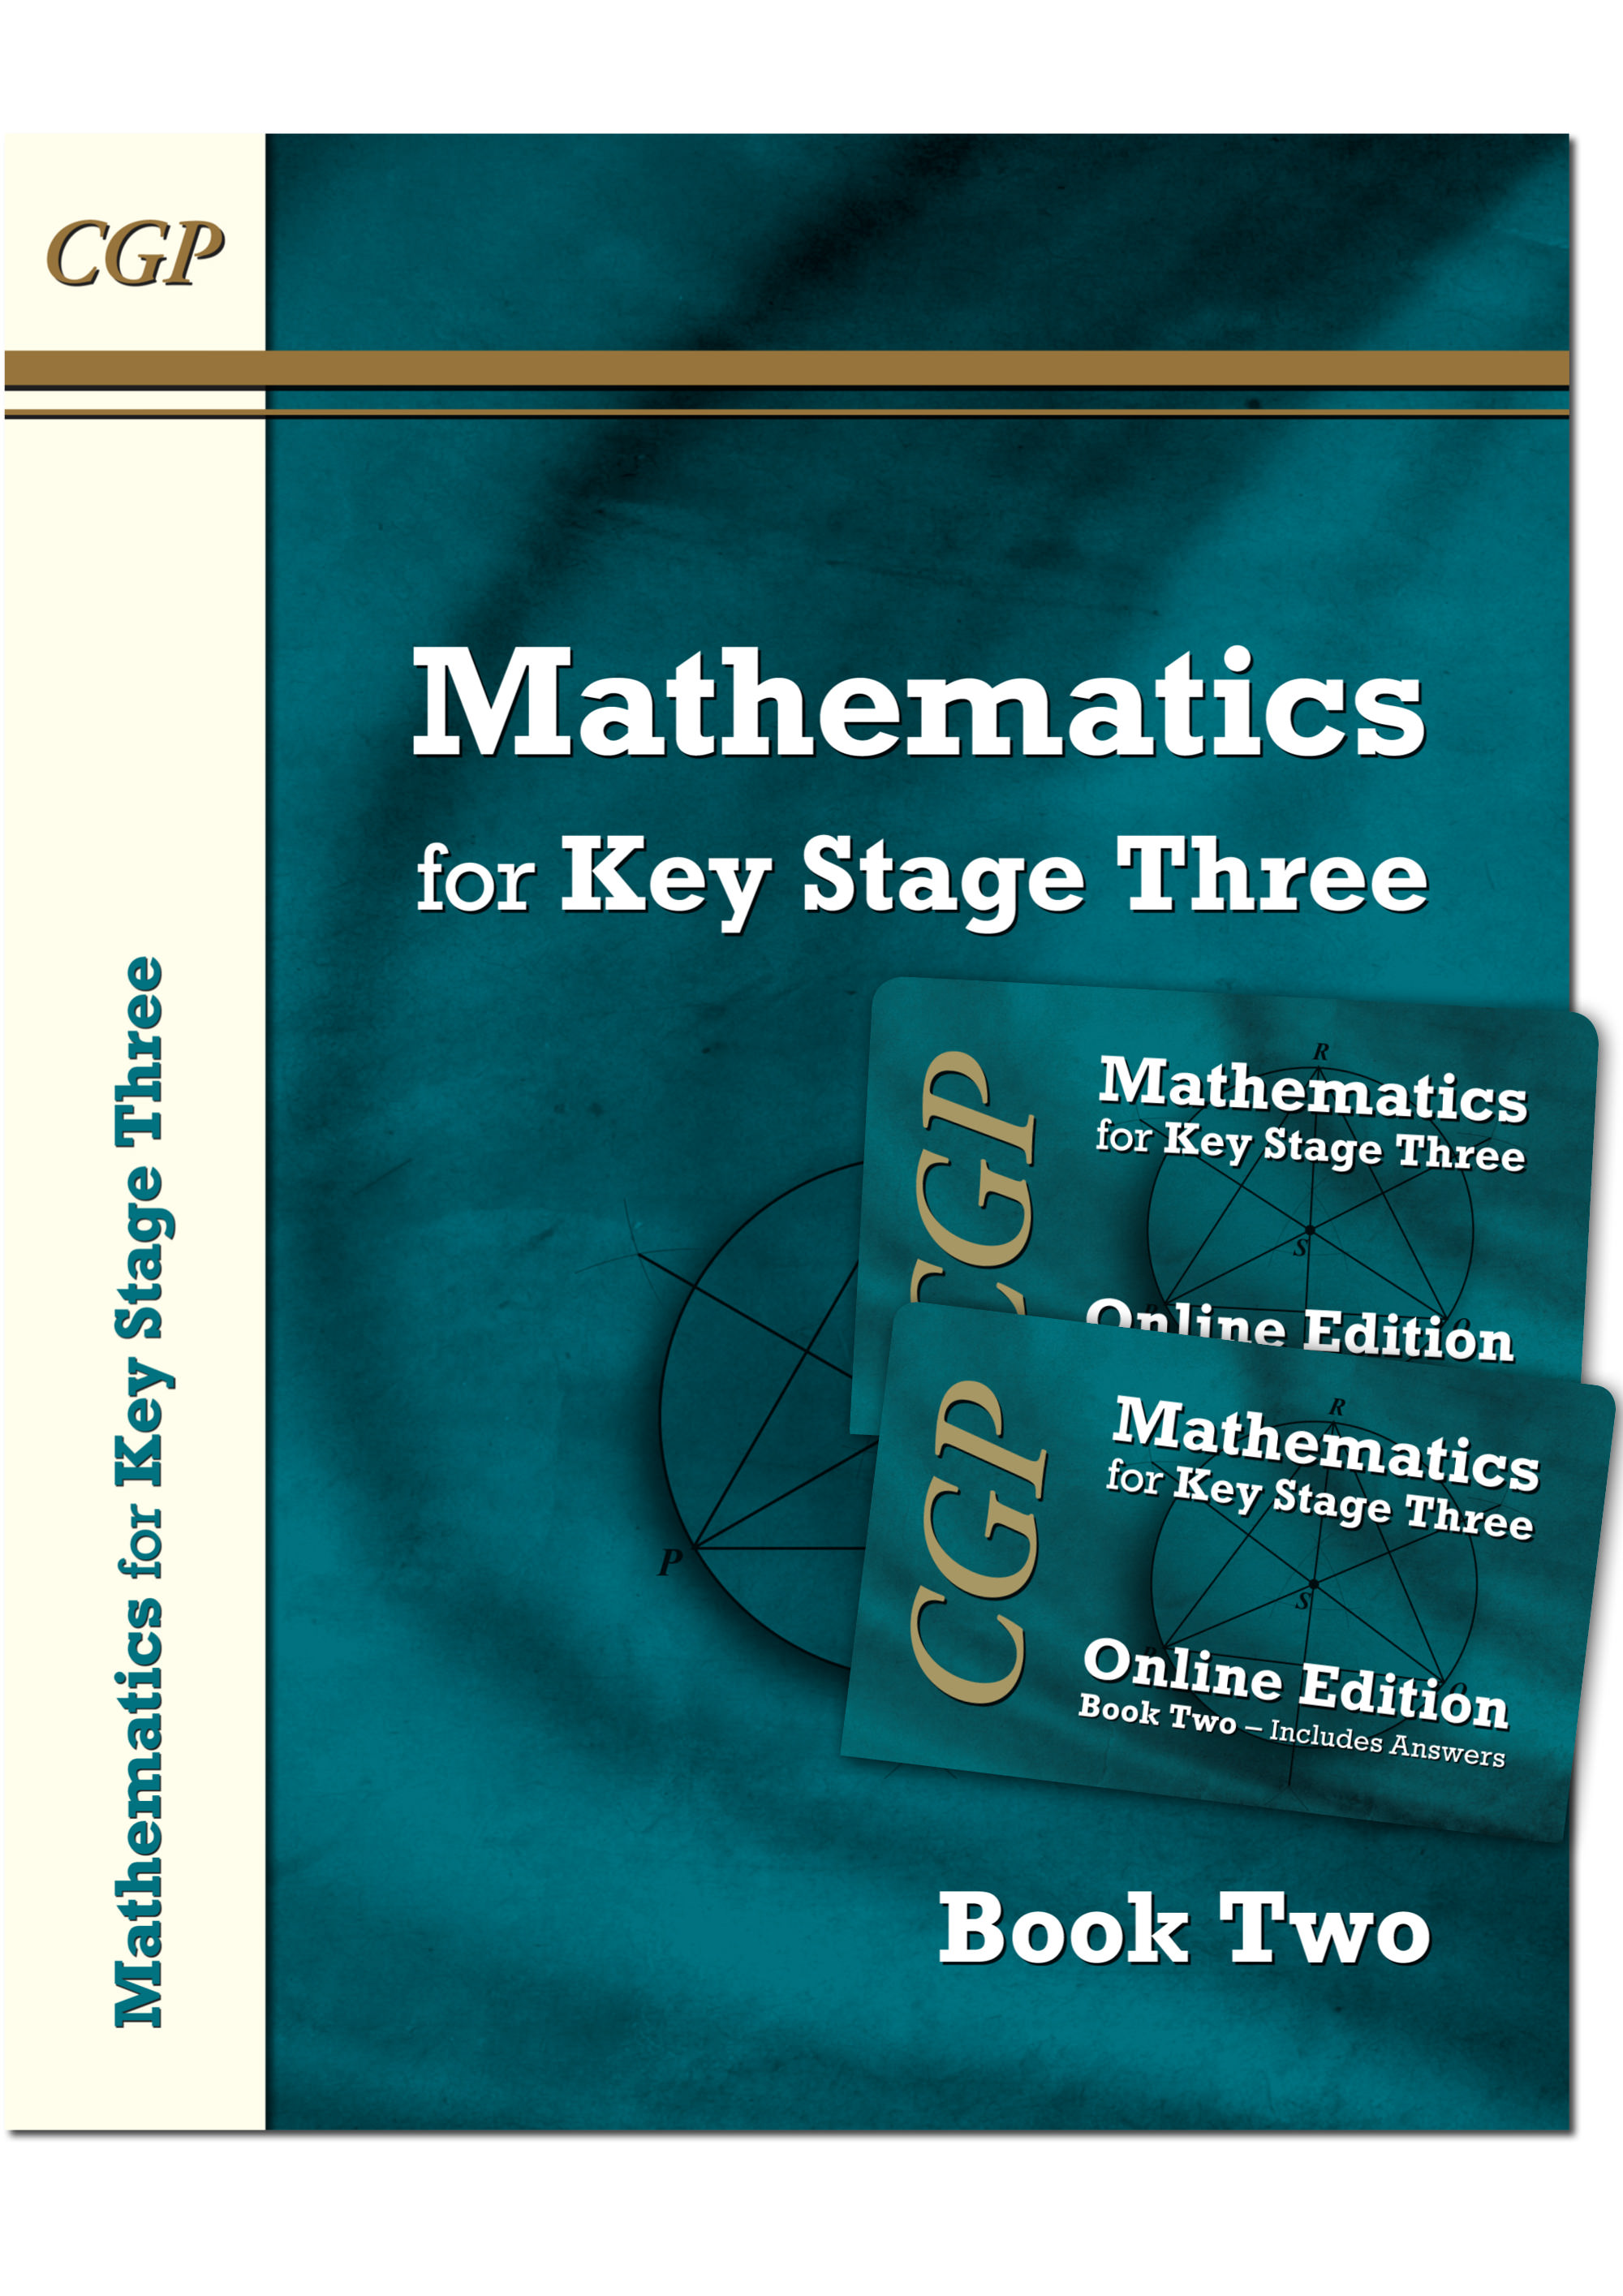 M2NB31 - KS3 Maths Textbook 2 plus two Online Editions (with answers)